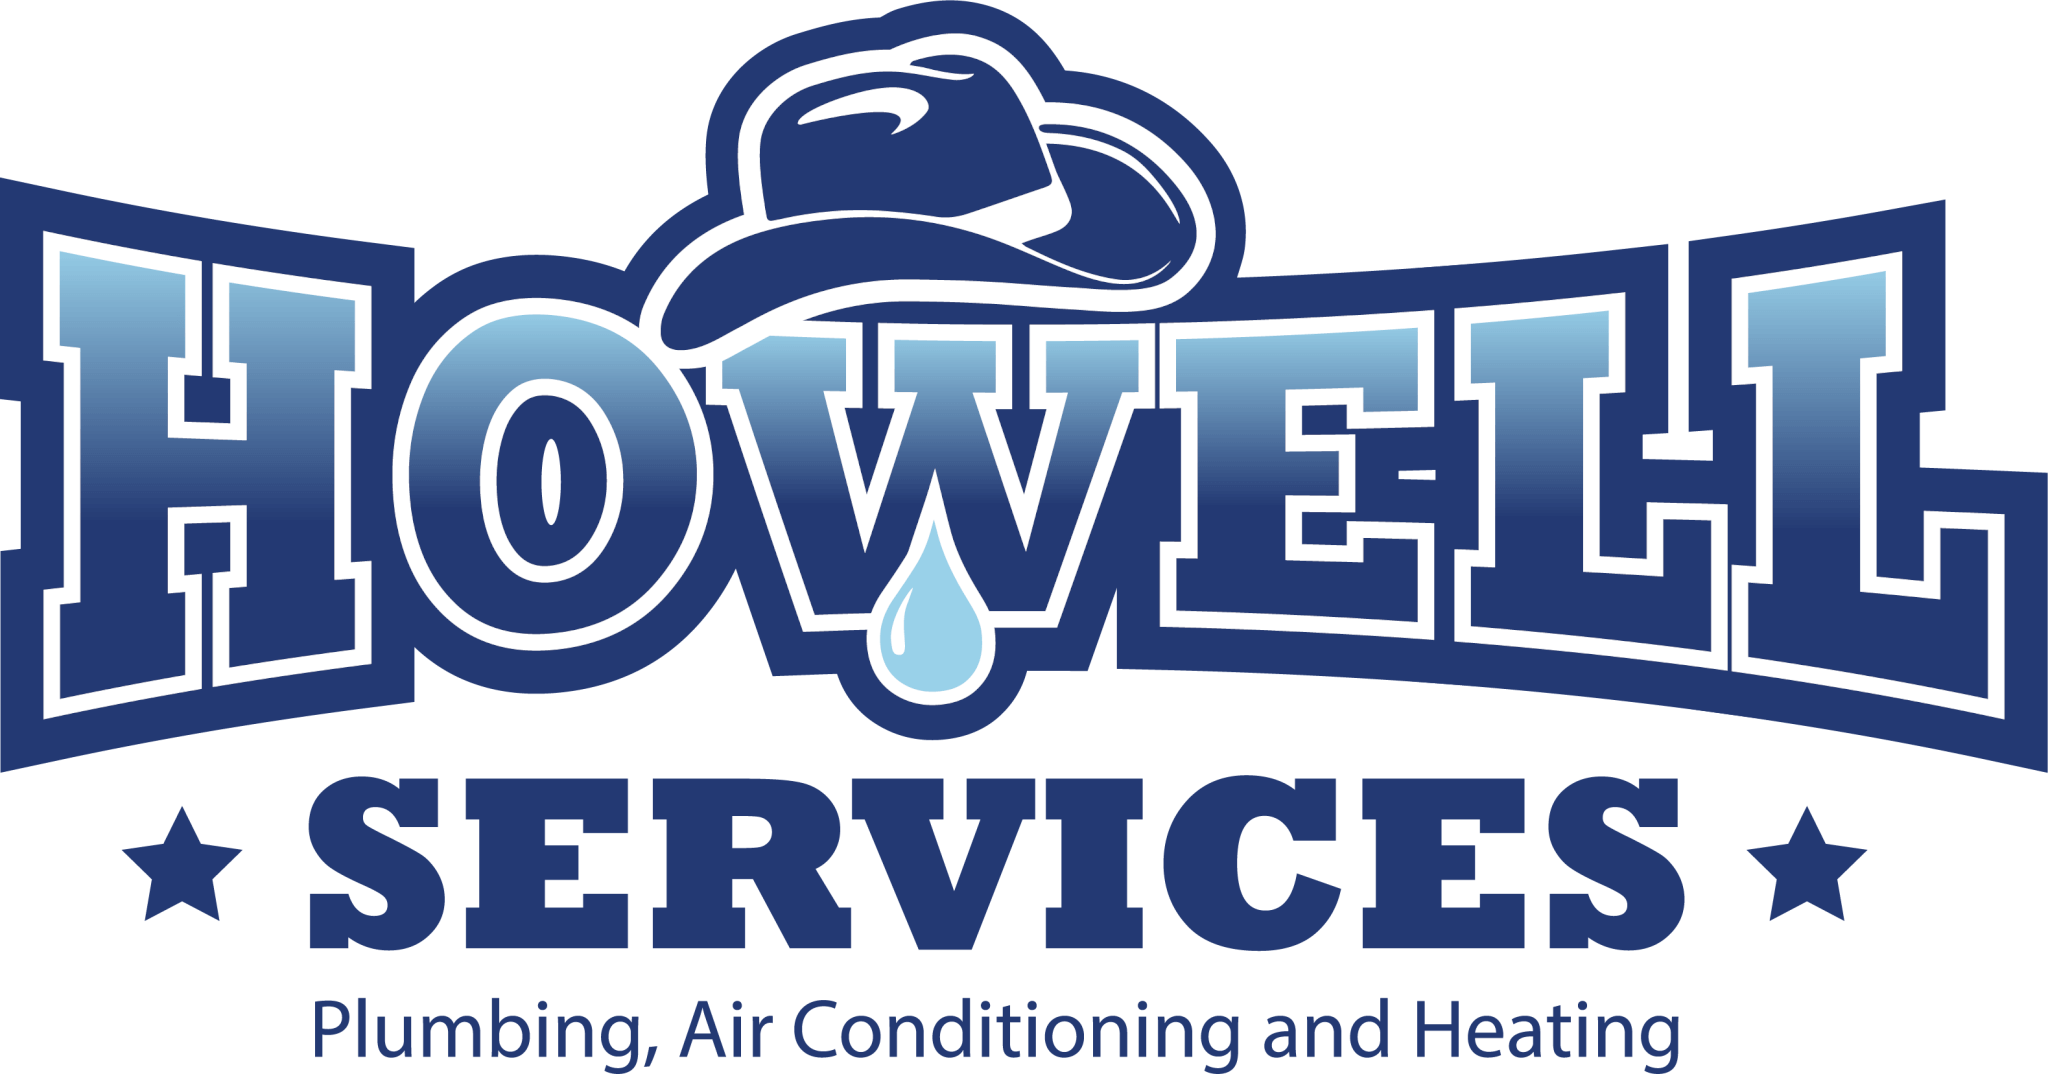 howell services logo